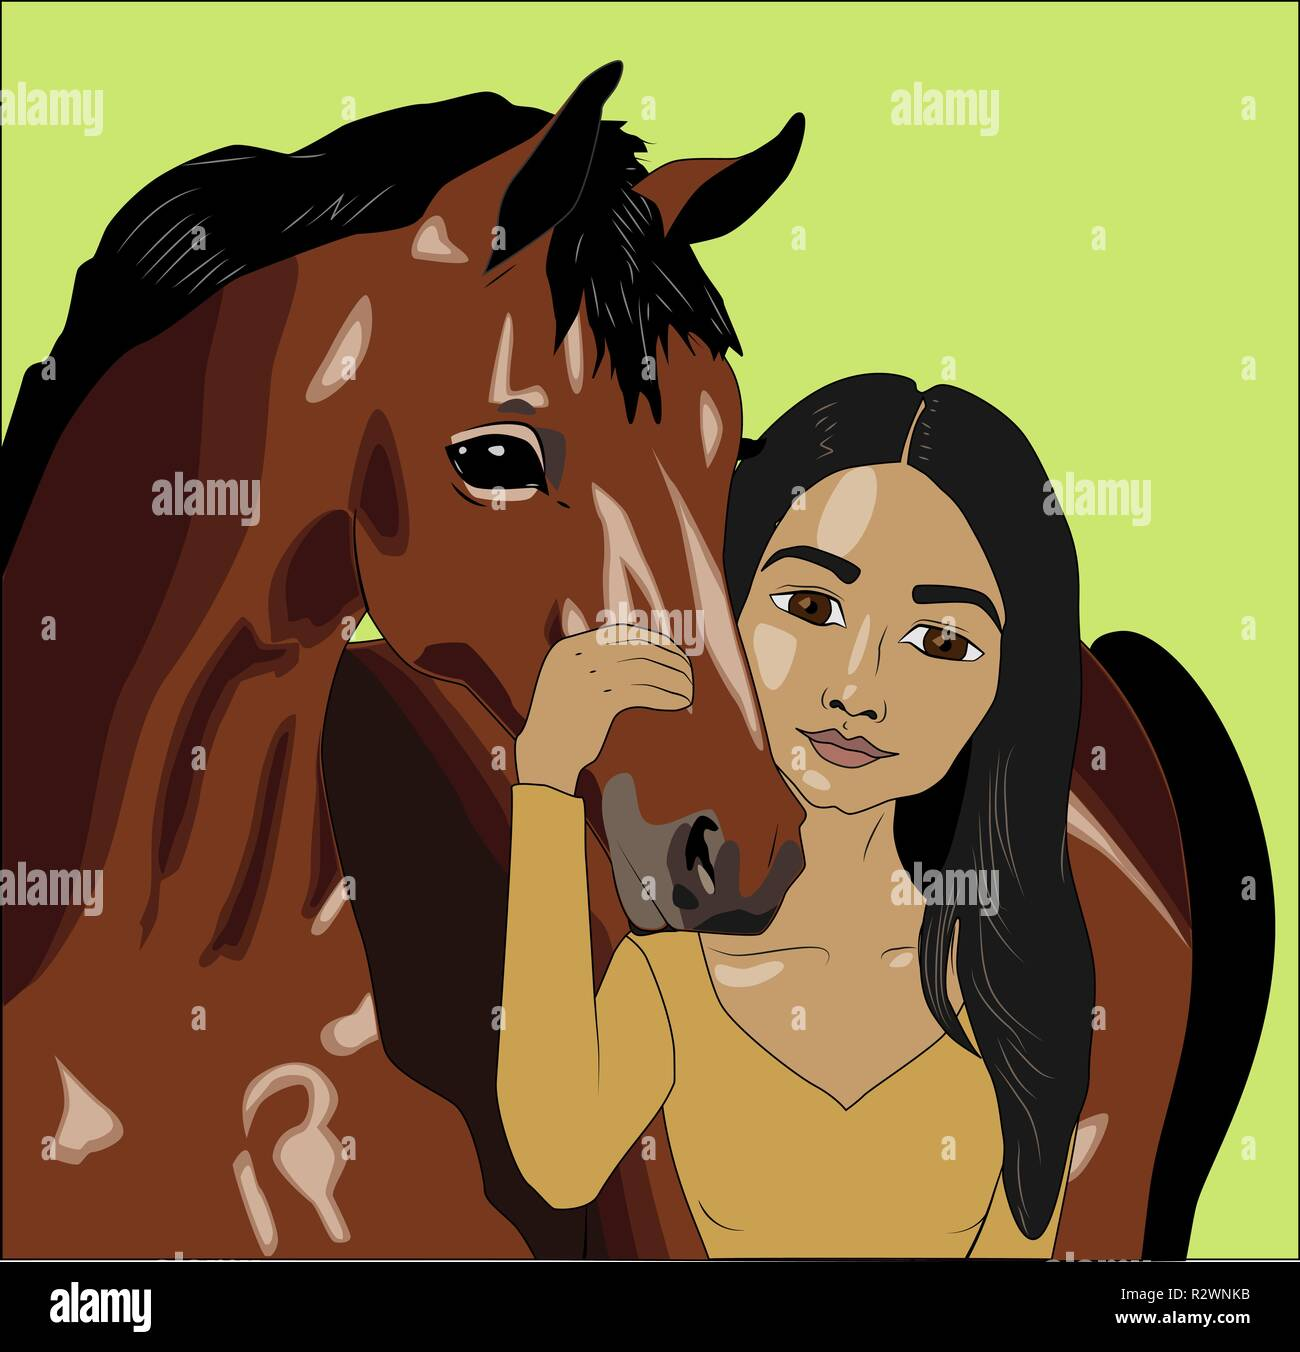 Native american woman with horse, vector illustration - Stock Vector